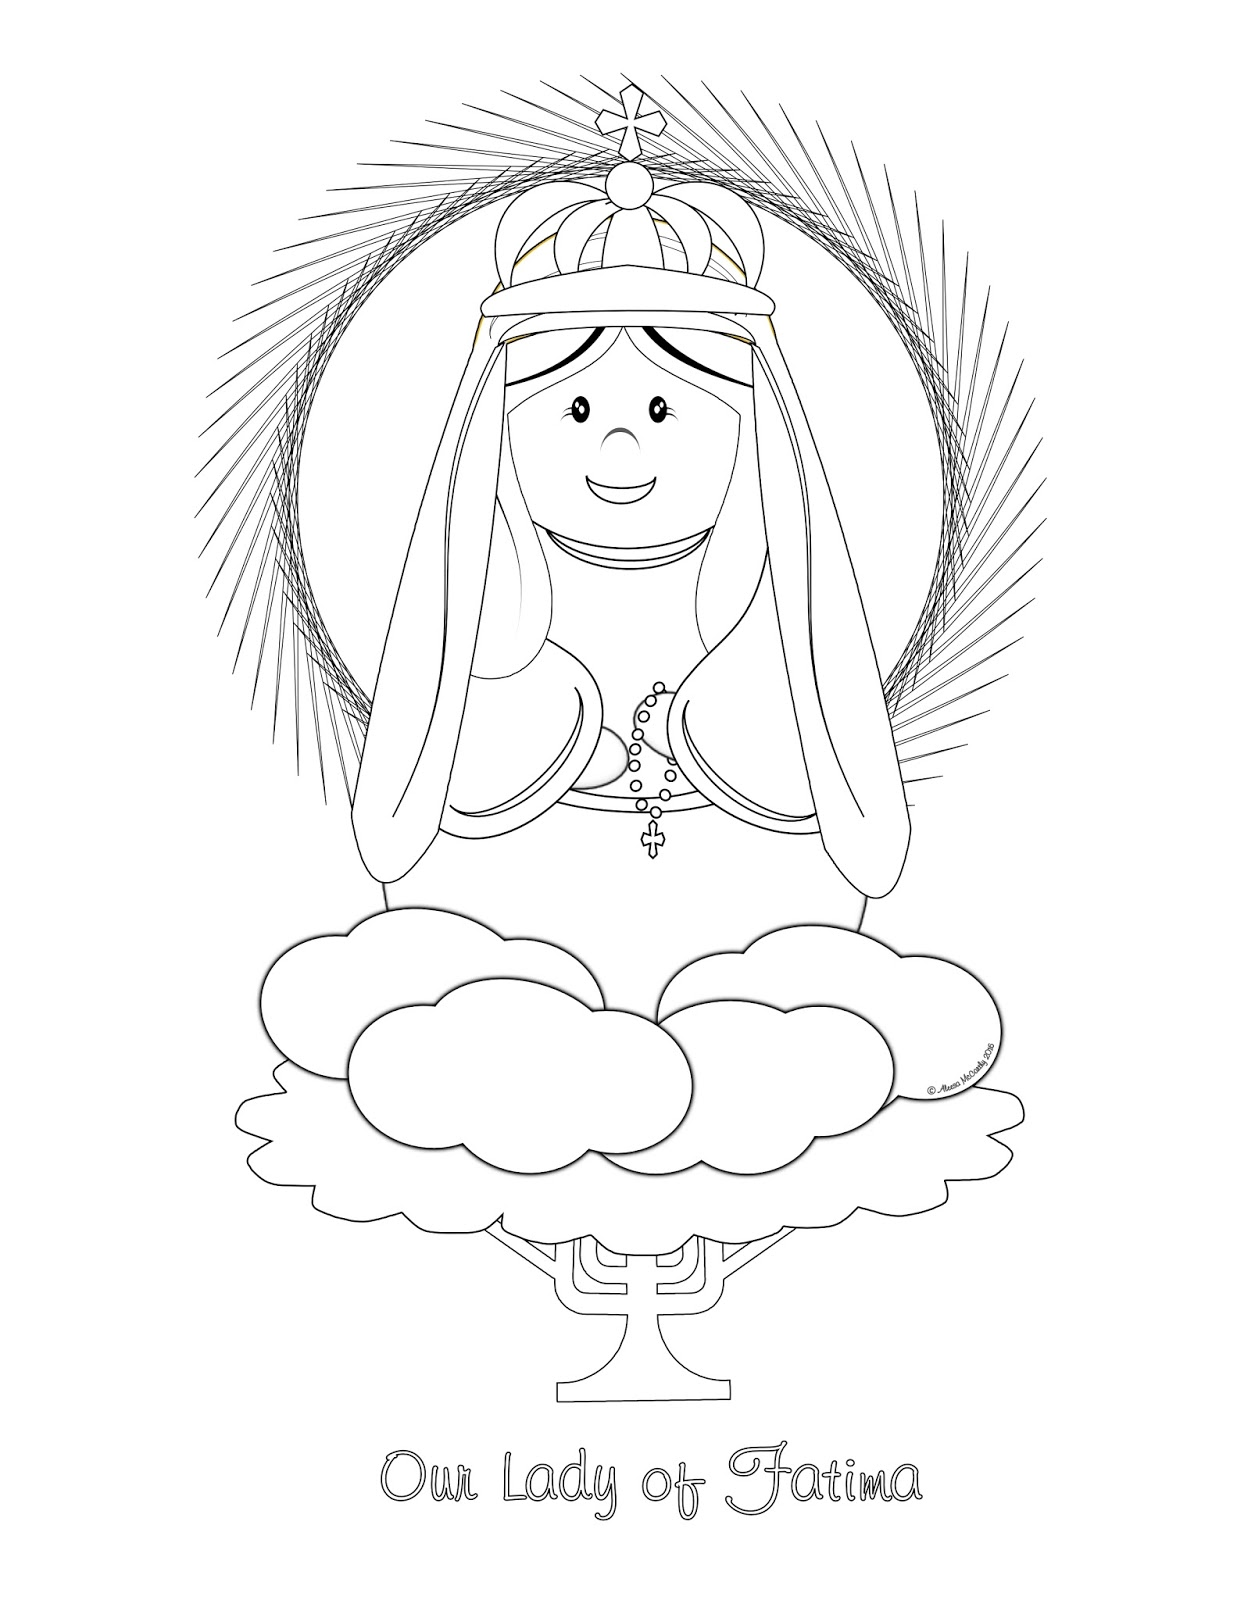 here is a cute coloring page of our lady of fatima for your little ones to enjoy